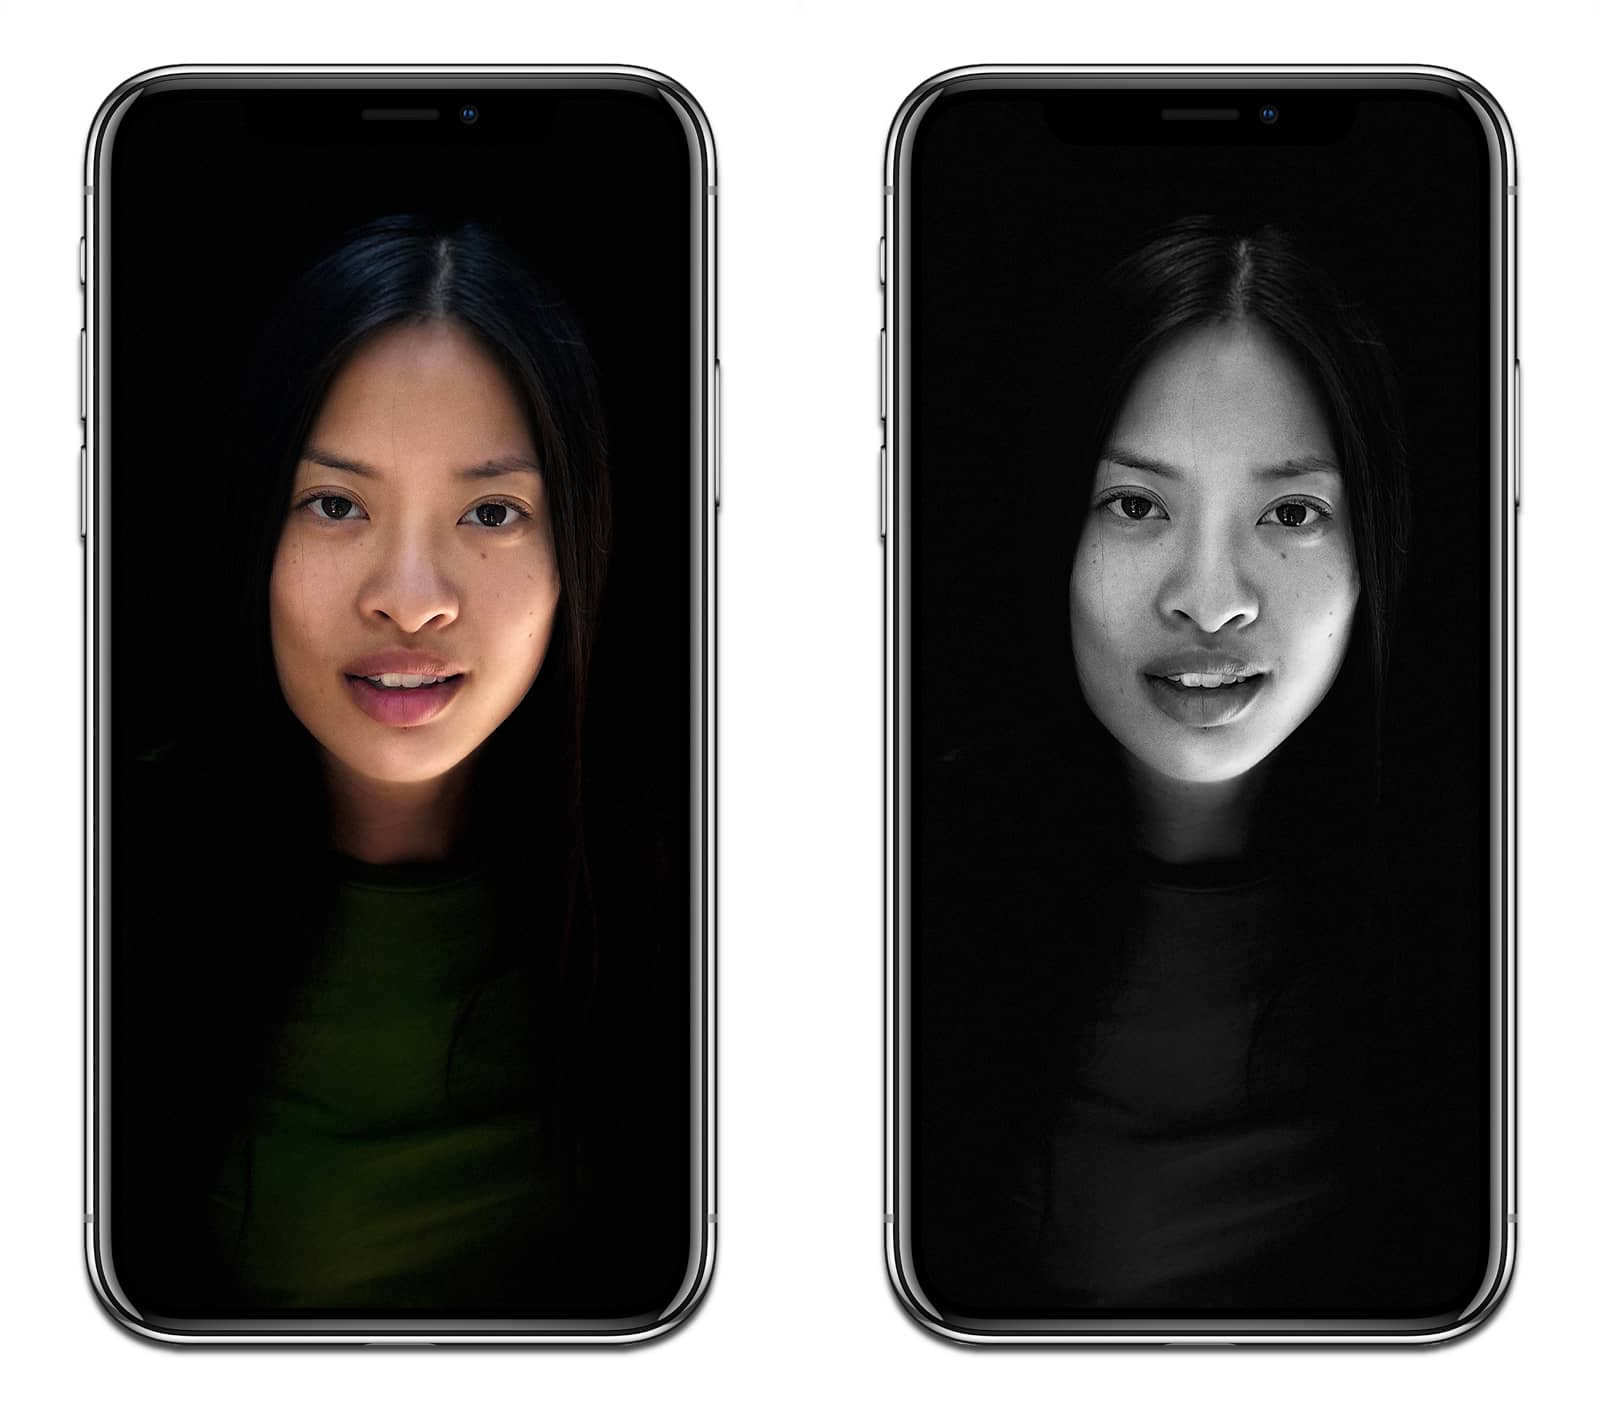 Screenshots of portrait lighting on the iPhone X.